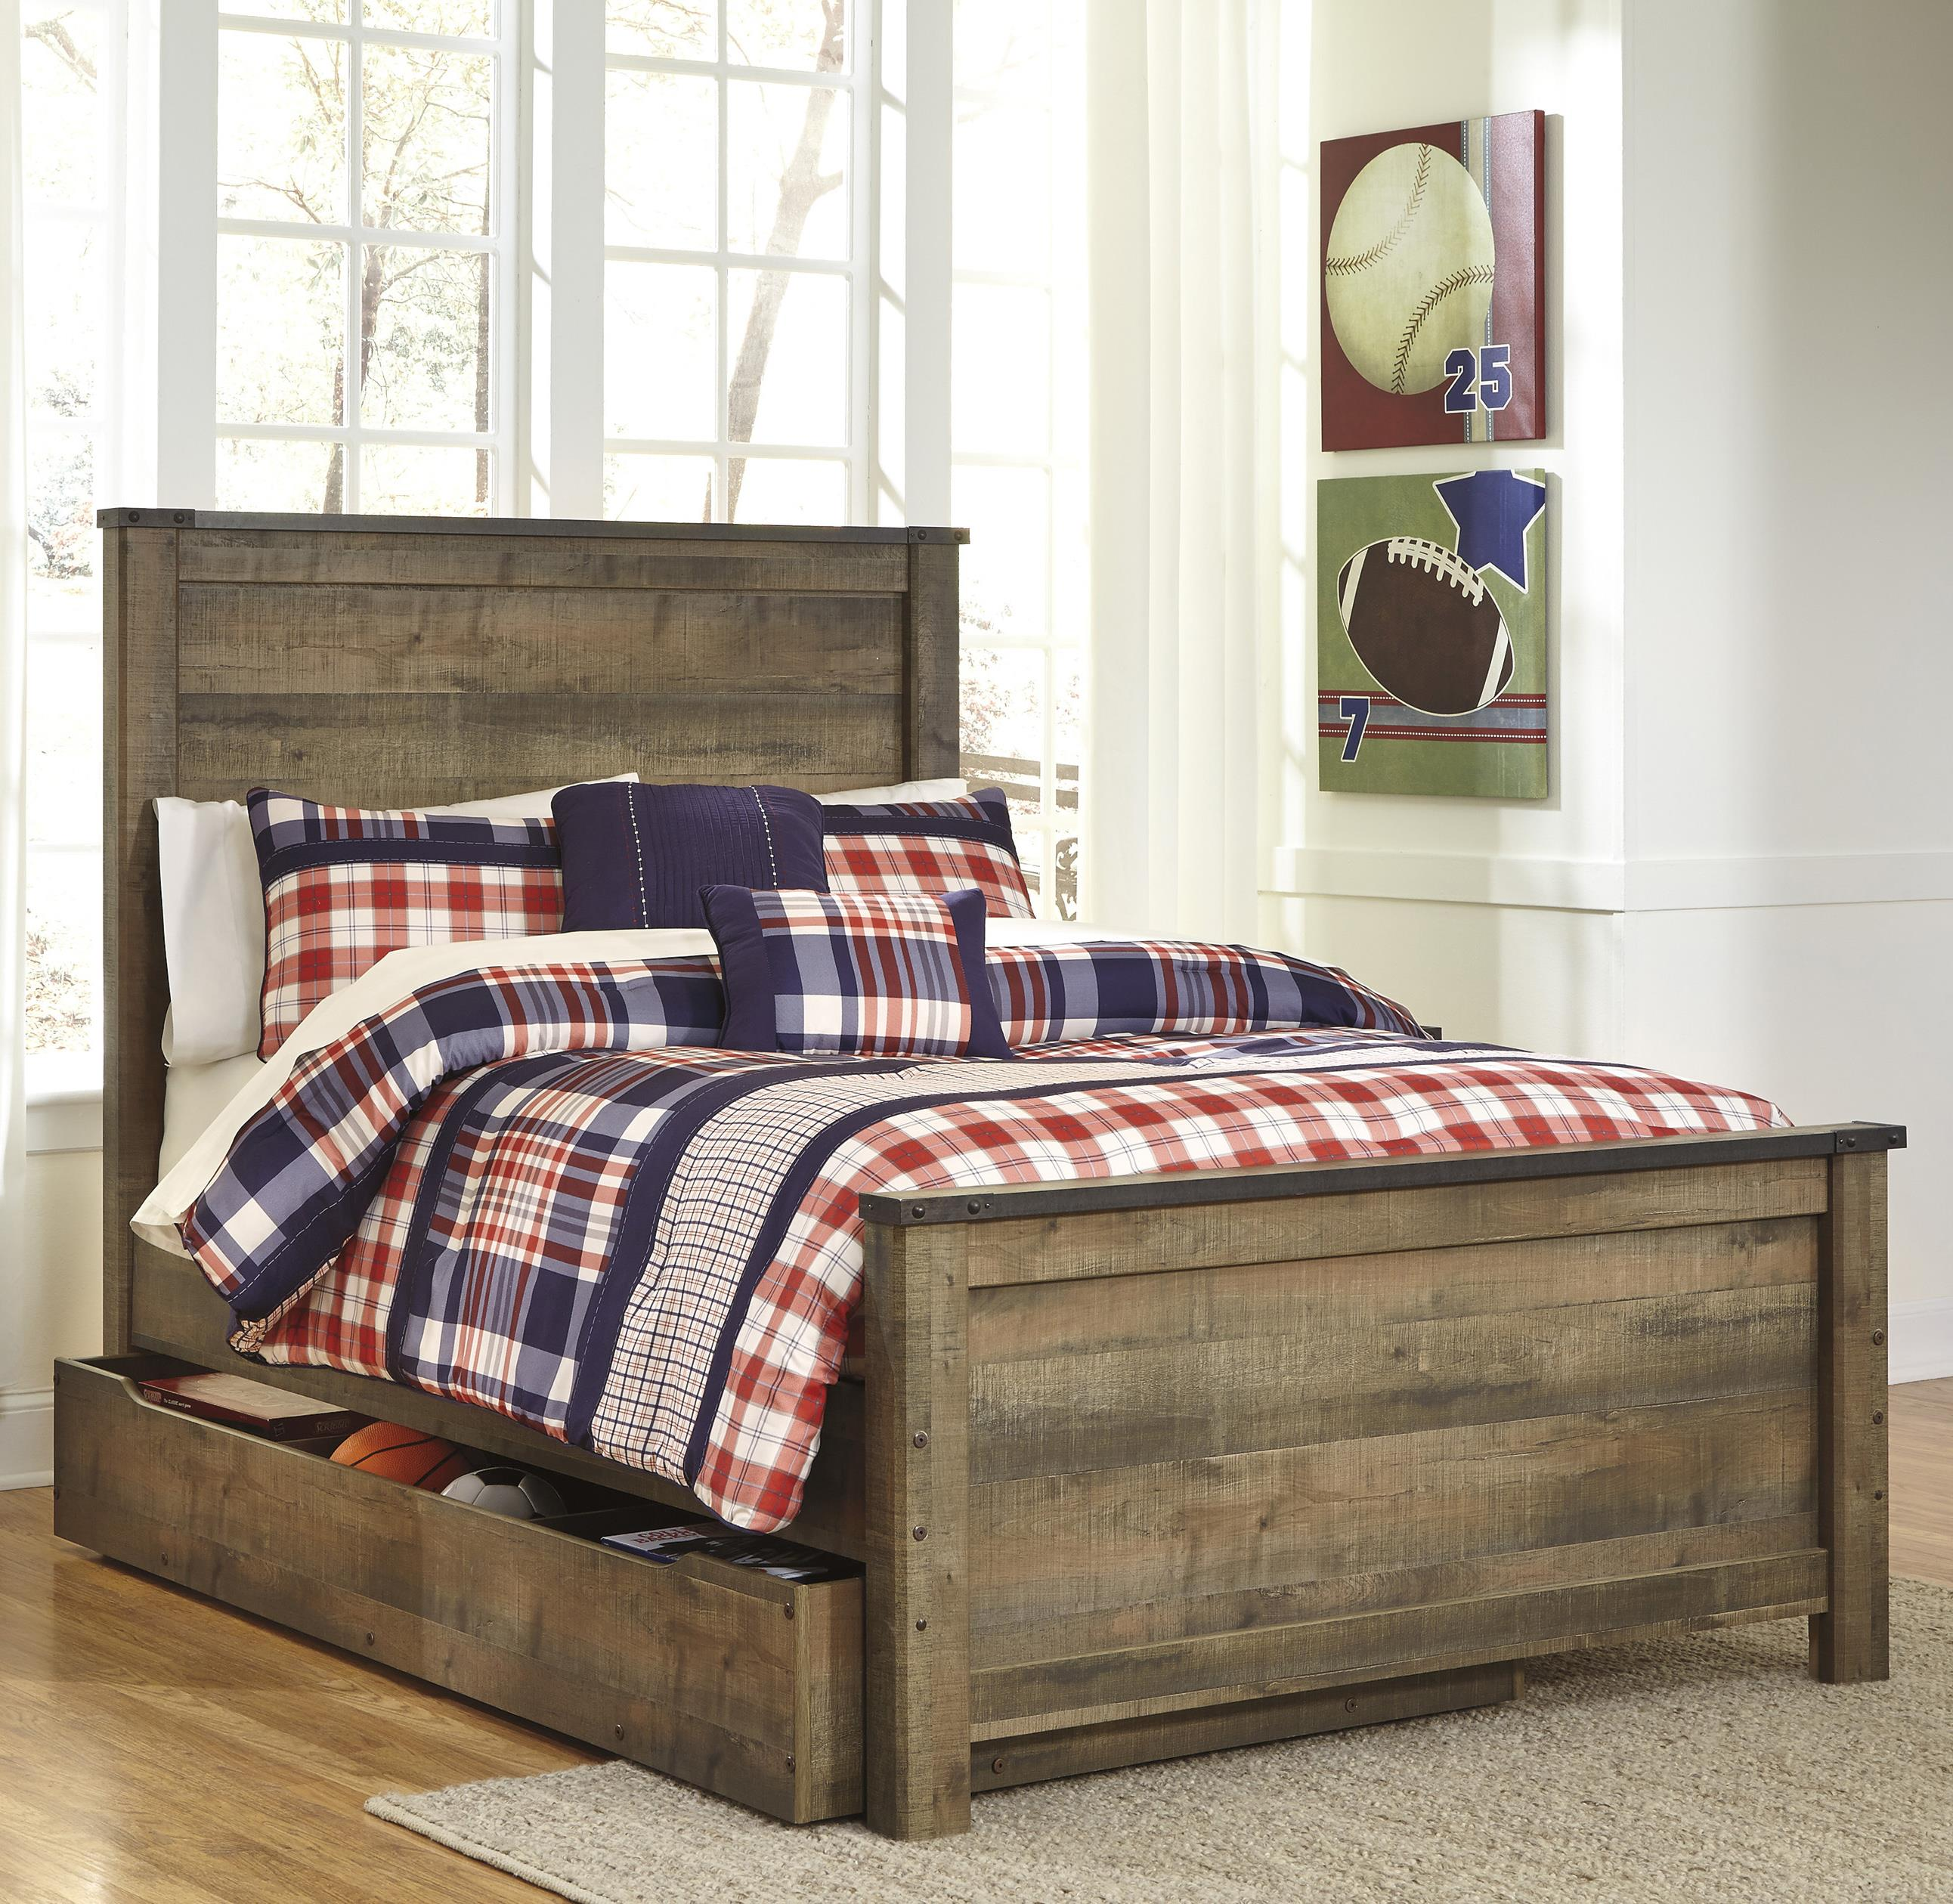 rustic look full panel bed with under bed storage trundle by signature design by ashley wolf. Black Bedroom Furniture Sets. Home Design Ideas